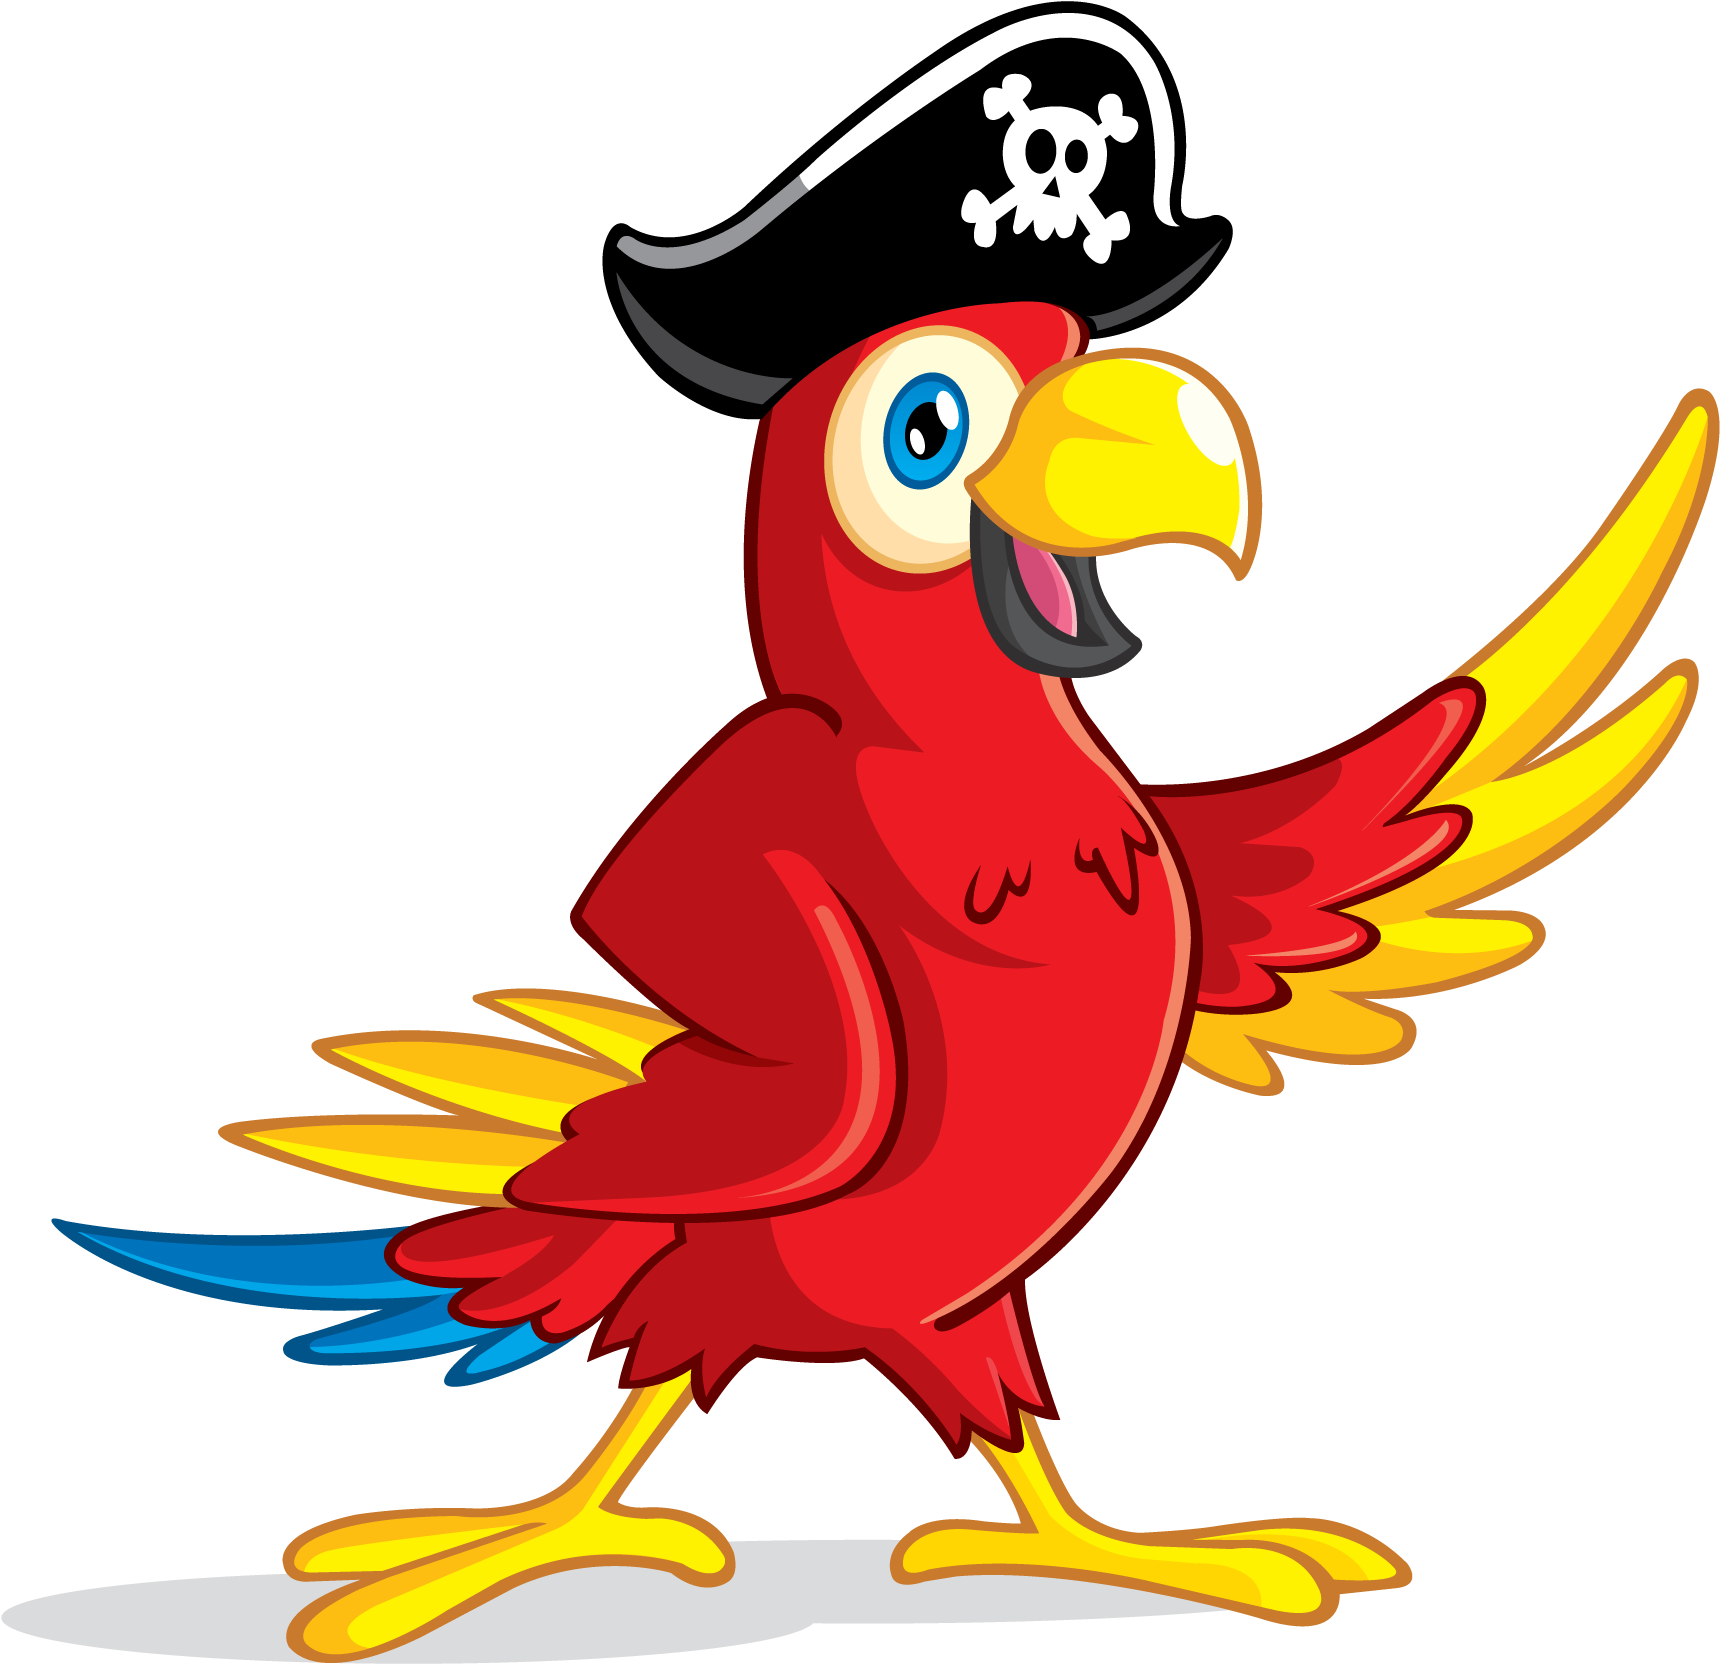 Forest clipart parrot. Pirate png x